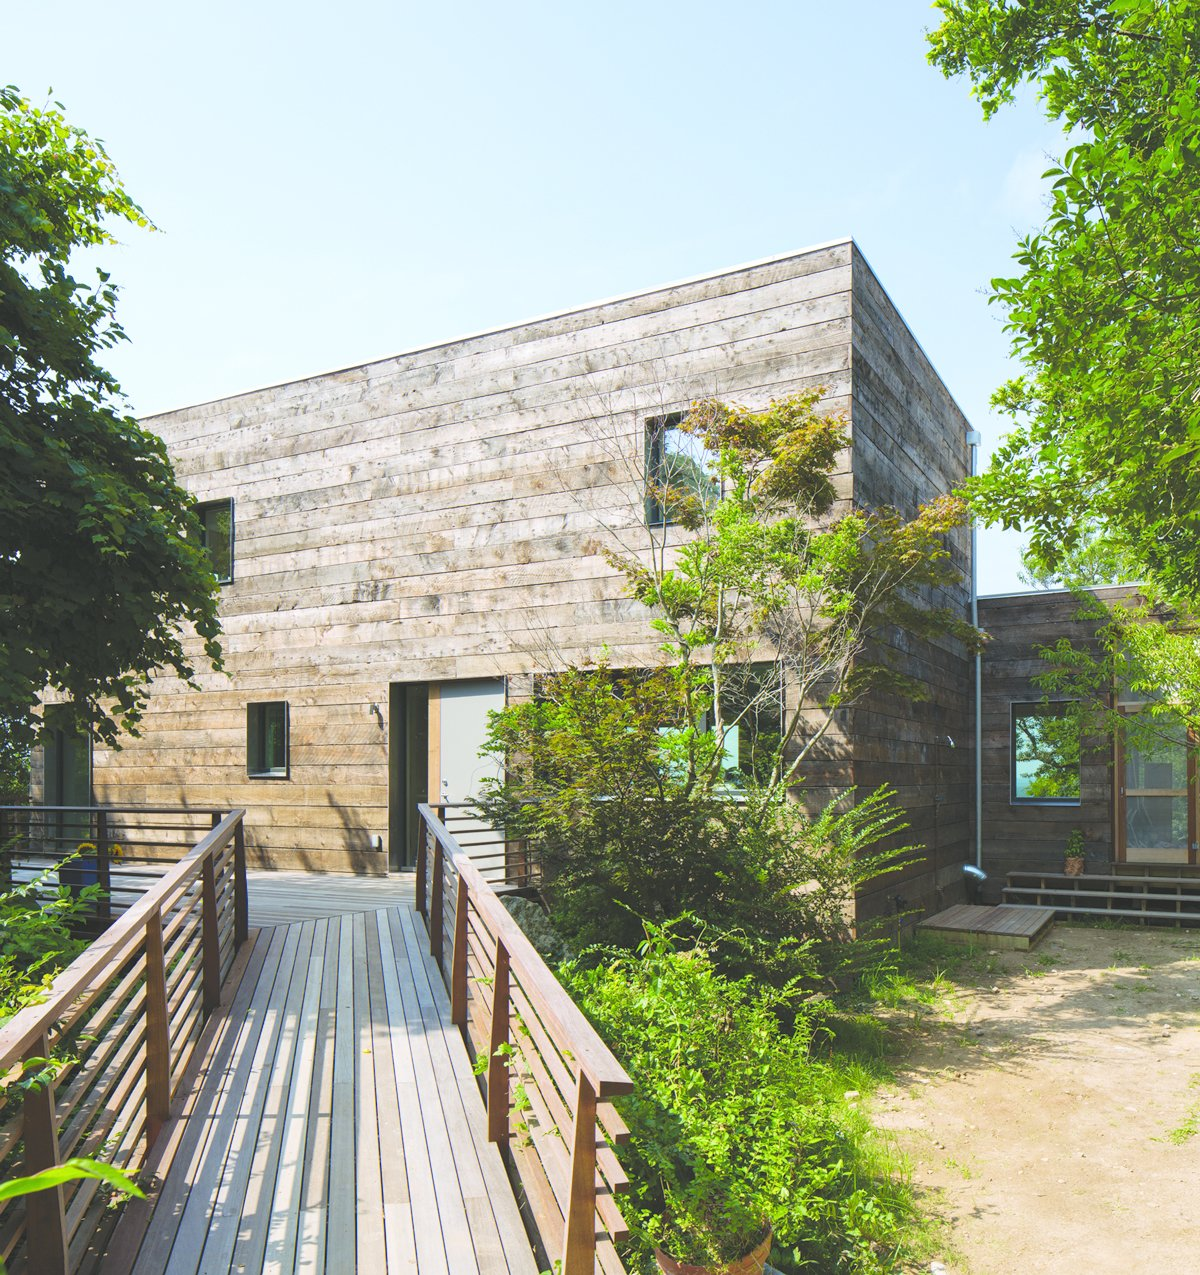 Orient House (2012) on Long Island was an existing structure retrofitted by Ryall Porter Sheridan Architects to conform to Passive House green standards.  15+ Passive Modern Home Ideas by Heather Corcoran from Top 10 Houses on Dwell This Week  January 23, 2014